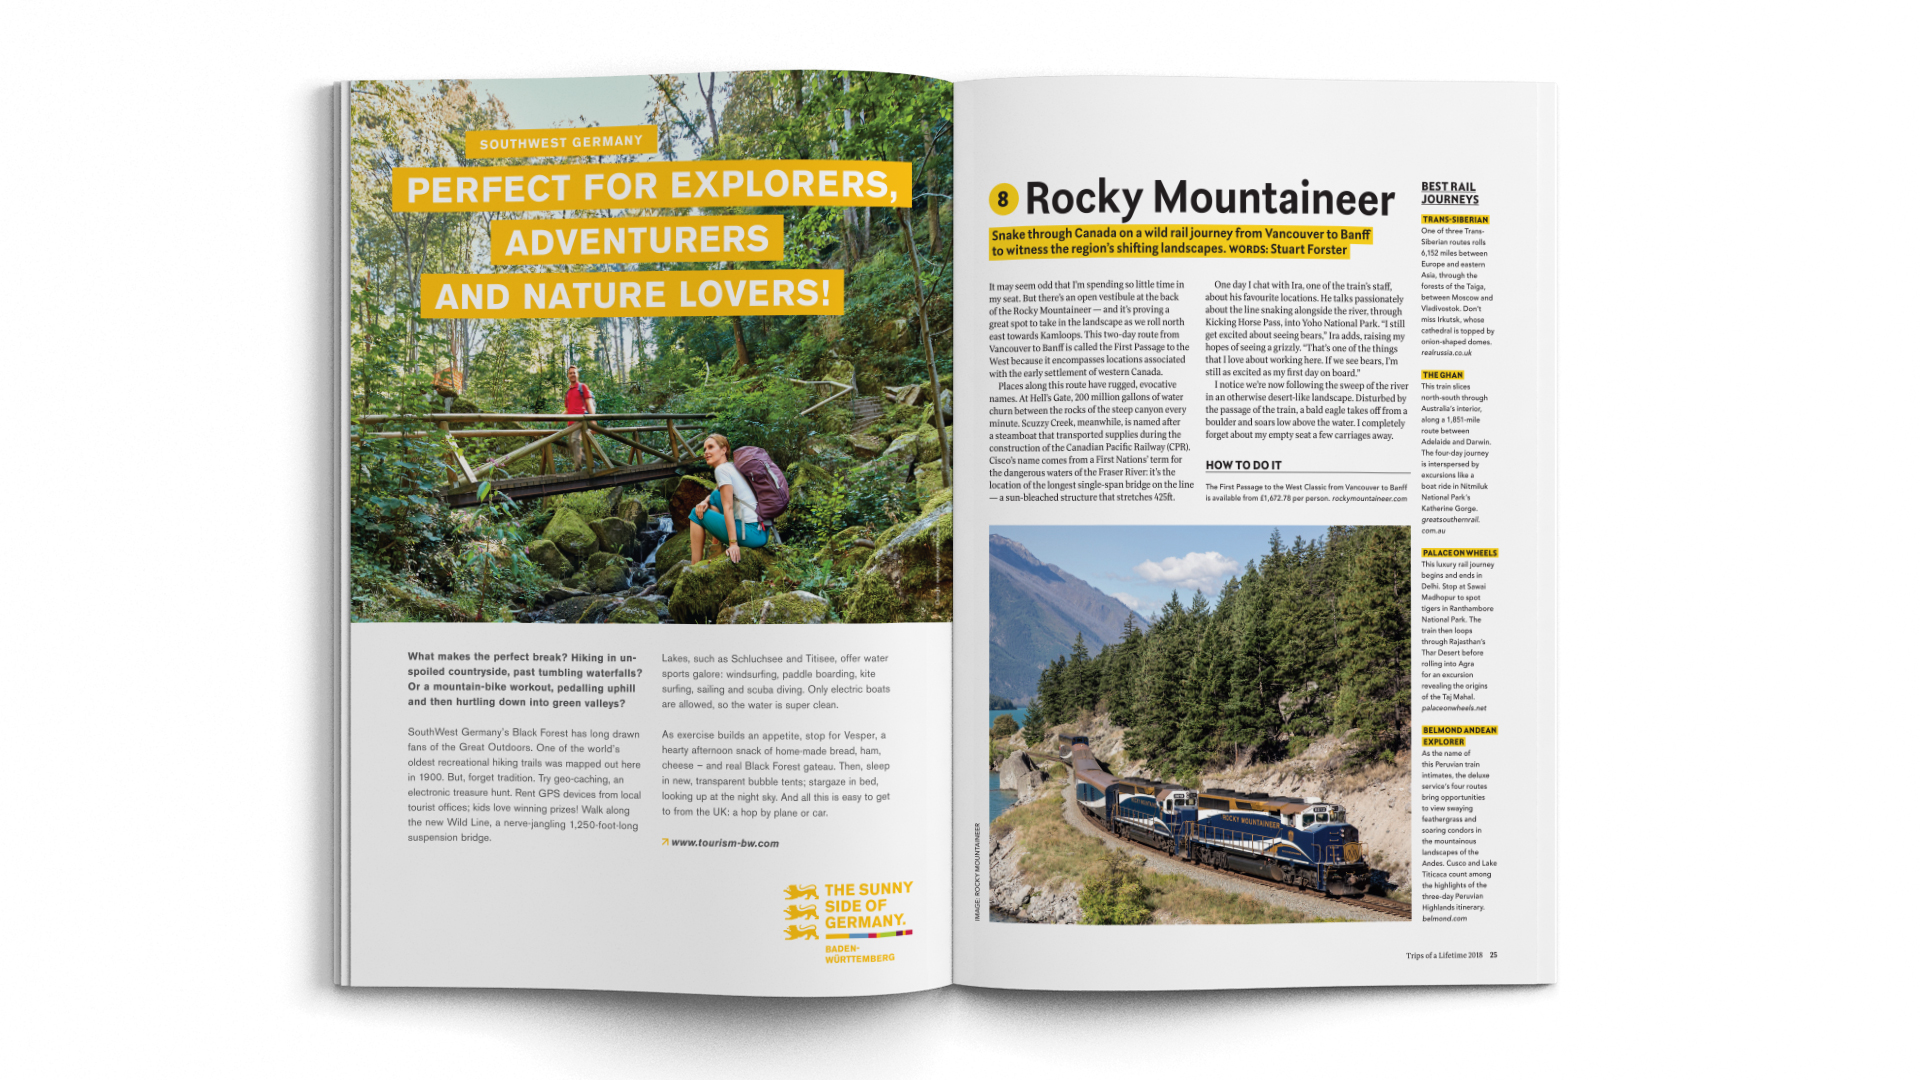 A4-Magazine-DPS-NGT-TRIPS-Rocky-Mountaineer-1